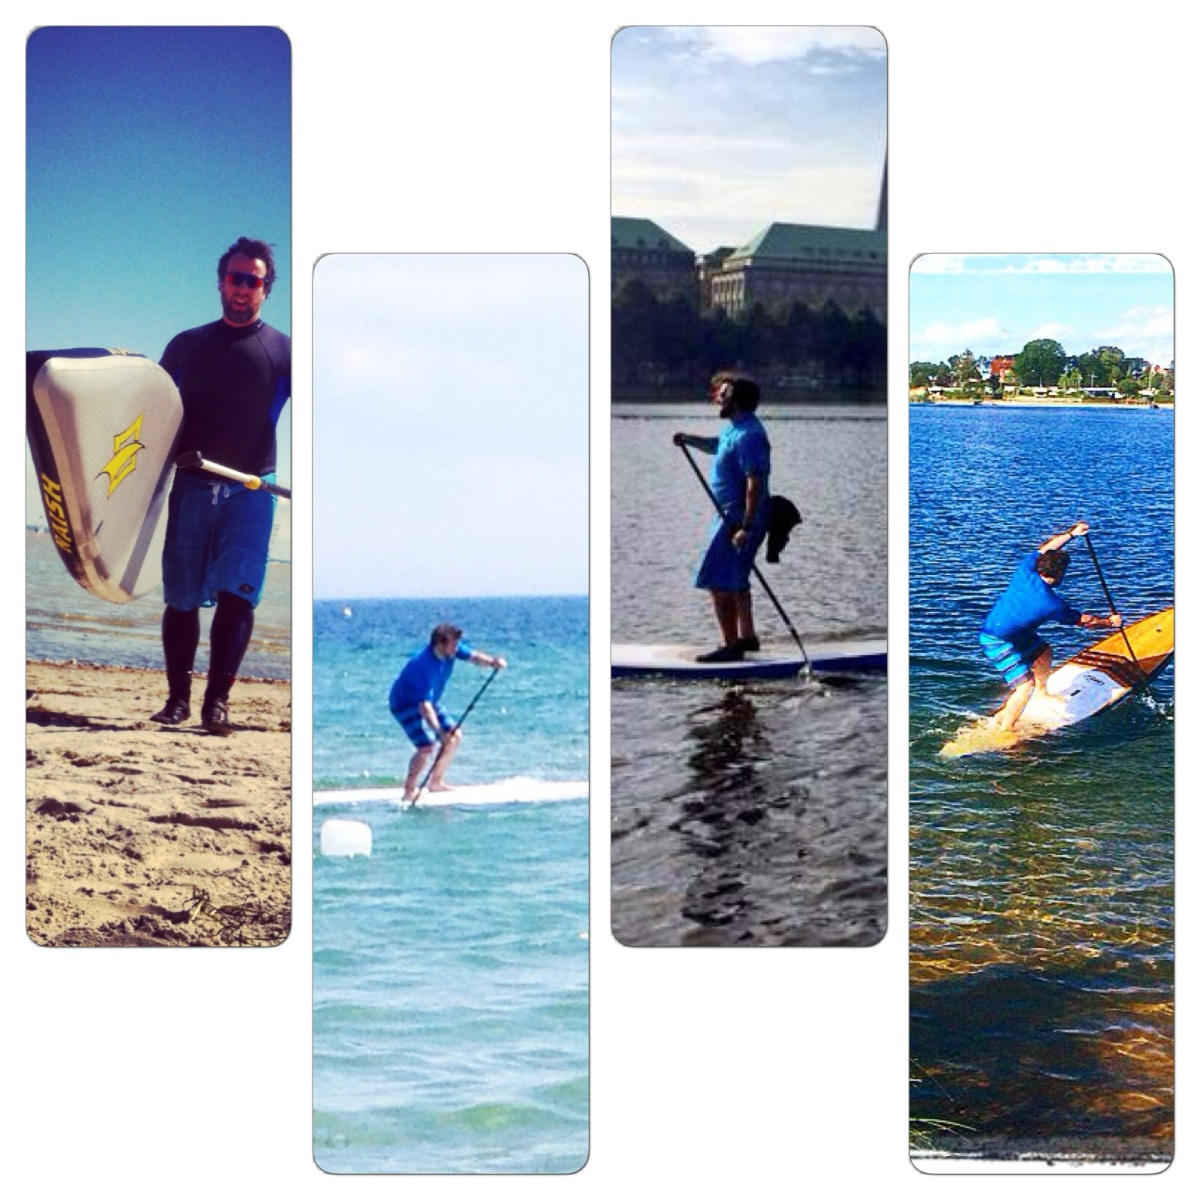 Mein SUP Sommer2014